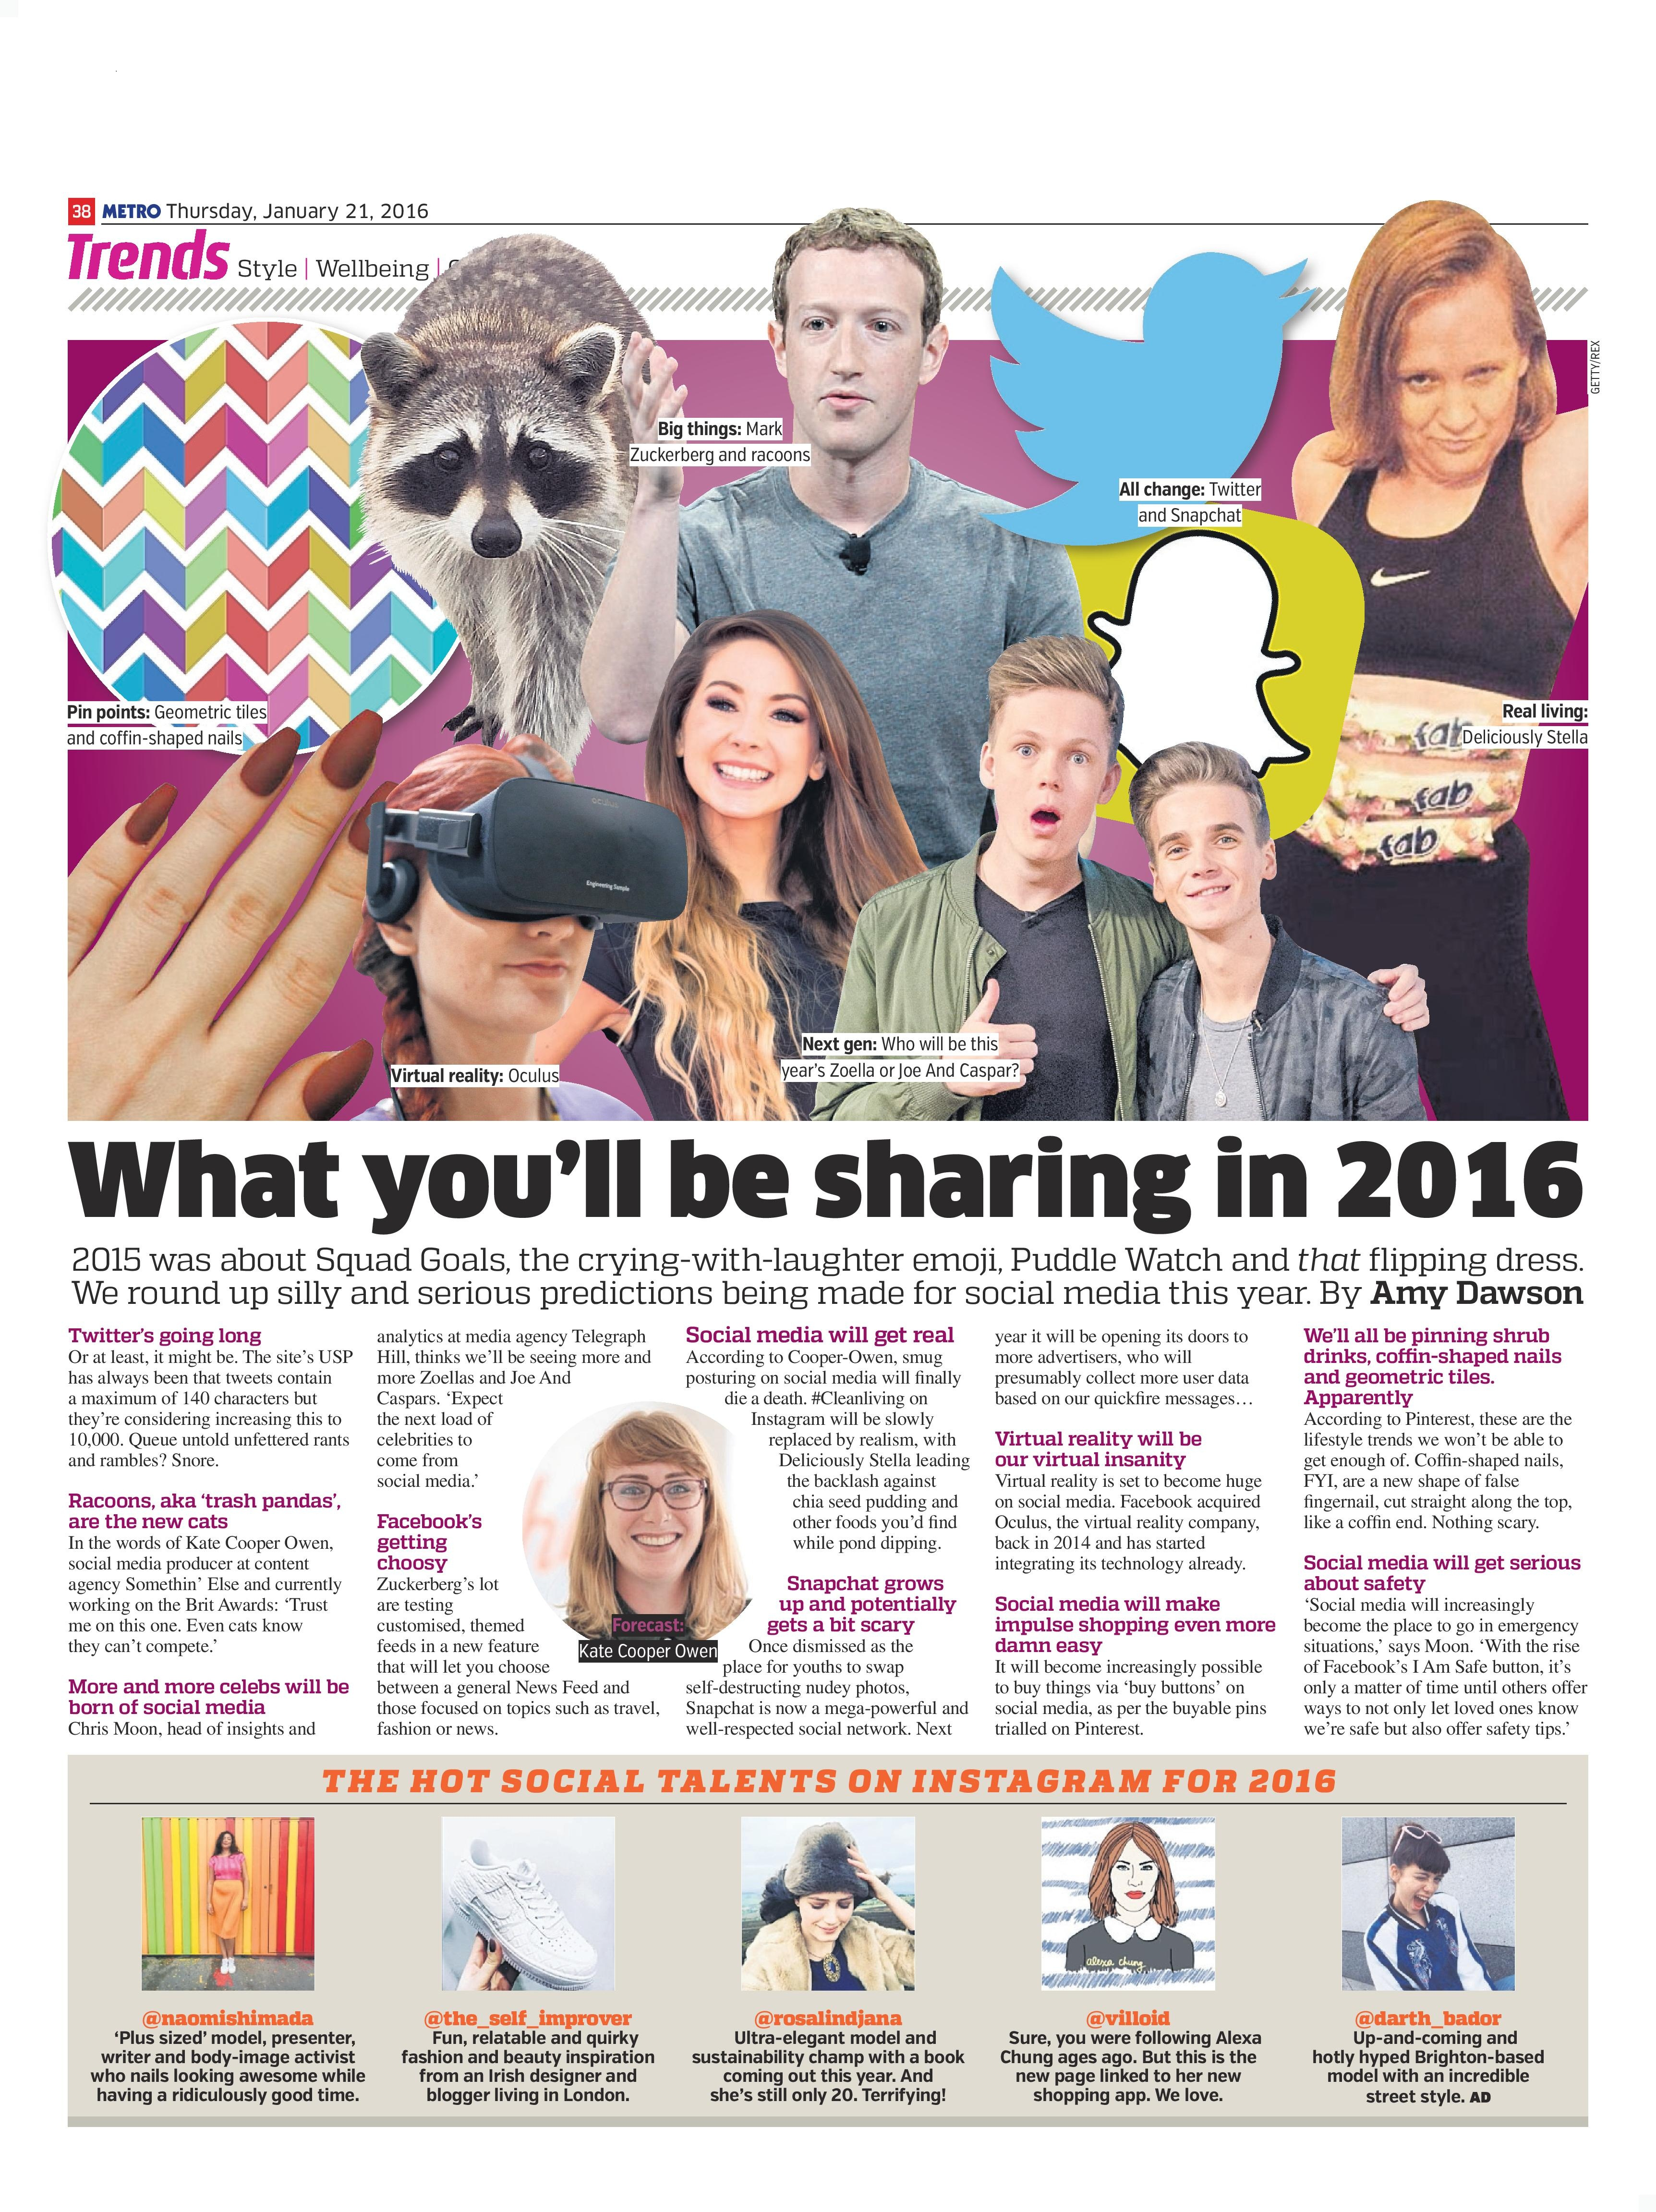 What you'll be sharing in 2016 (Metro, 21st Jan 2016)